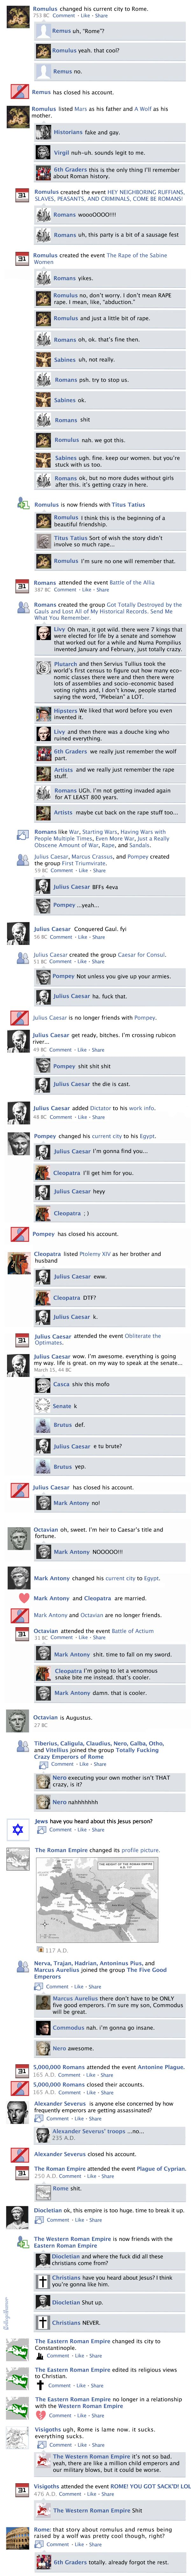 Facebook History of the World. Kind of hilarious.